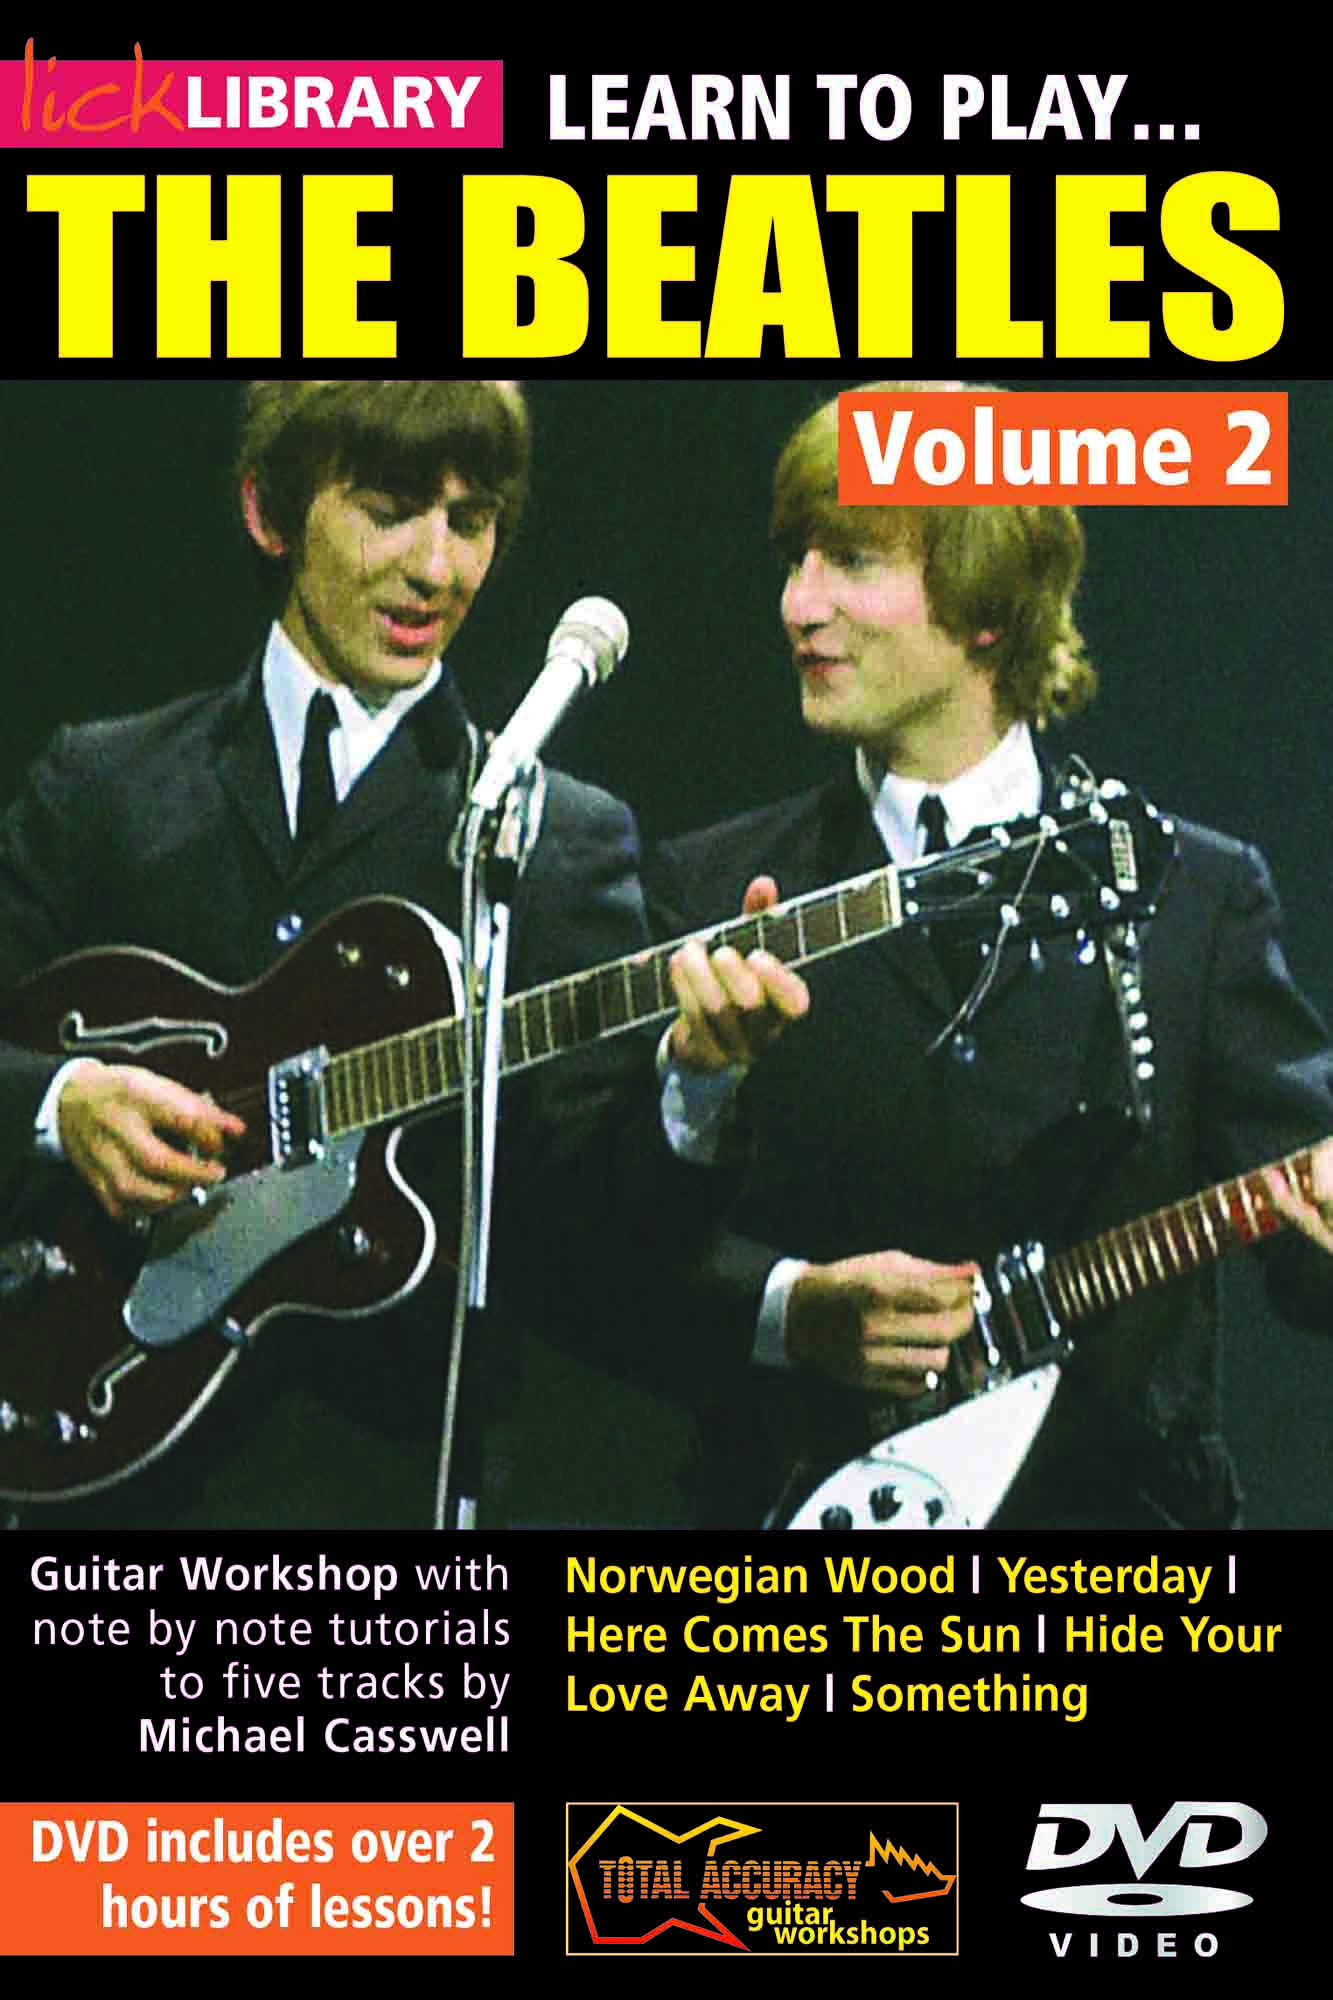 Learn To Play The Beatles Volume 2